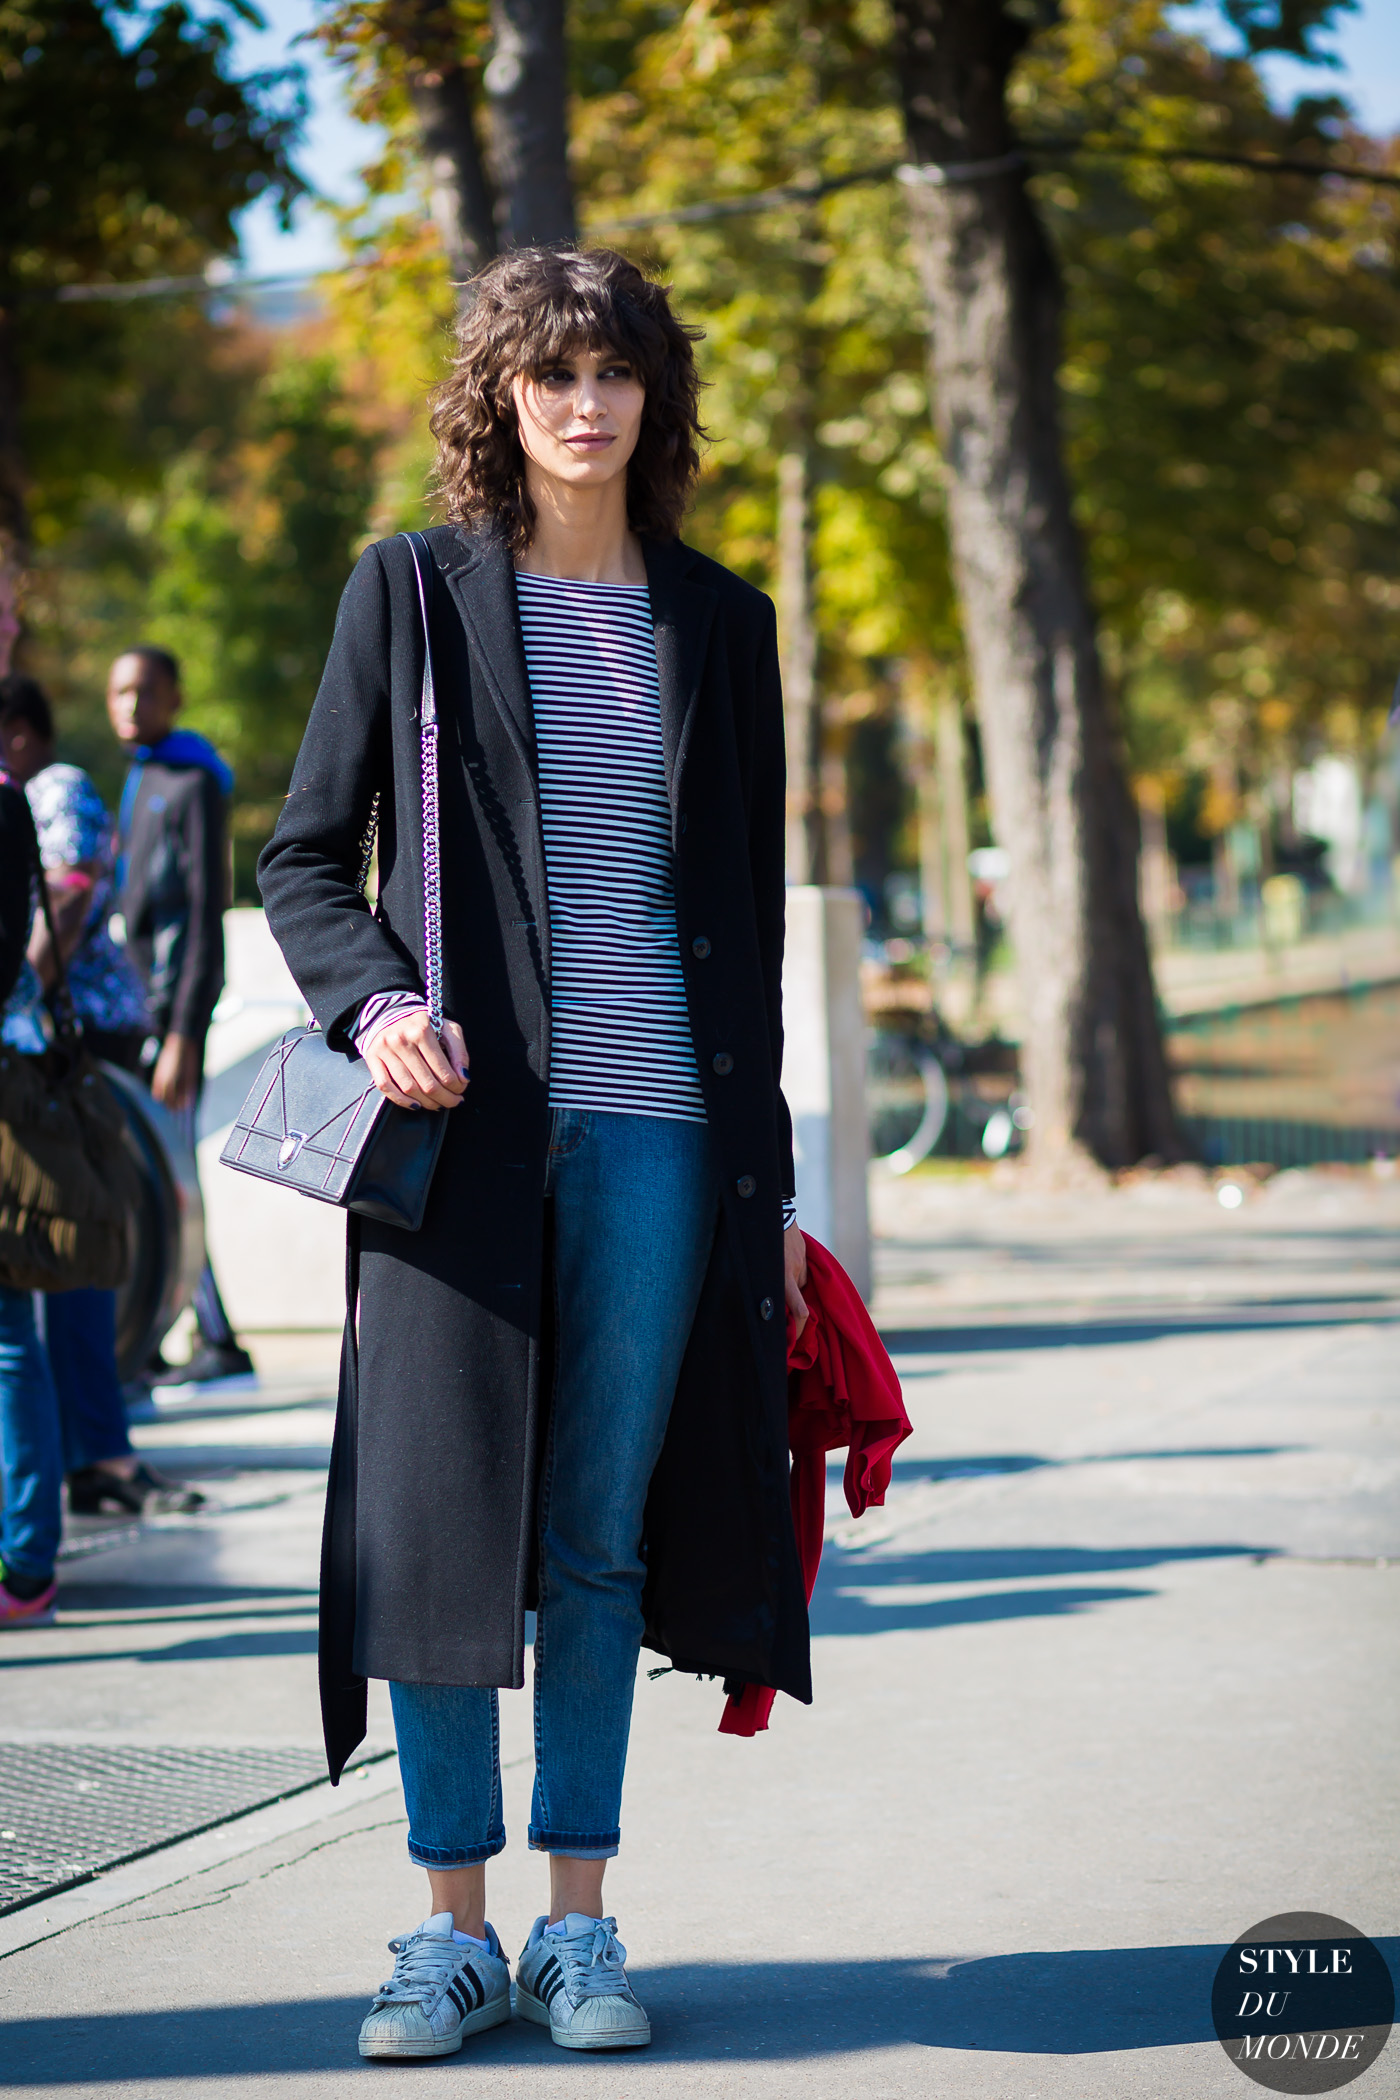 Mica Arganaraz Street Style Street Fashion Streetsnaps by STYLEDUMONDE Street Style Fashion Photography